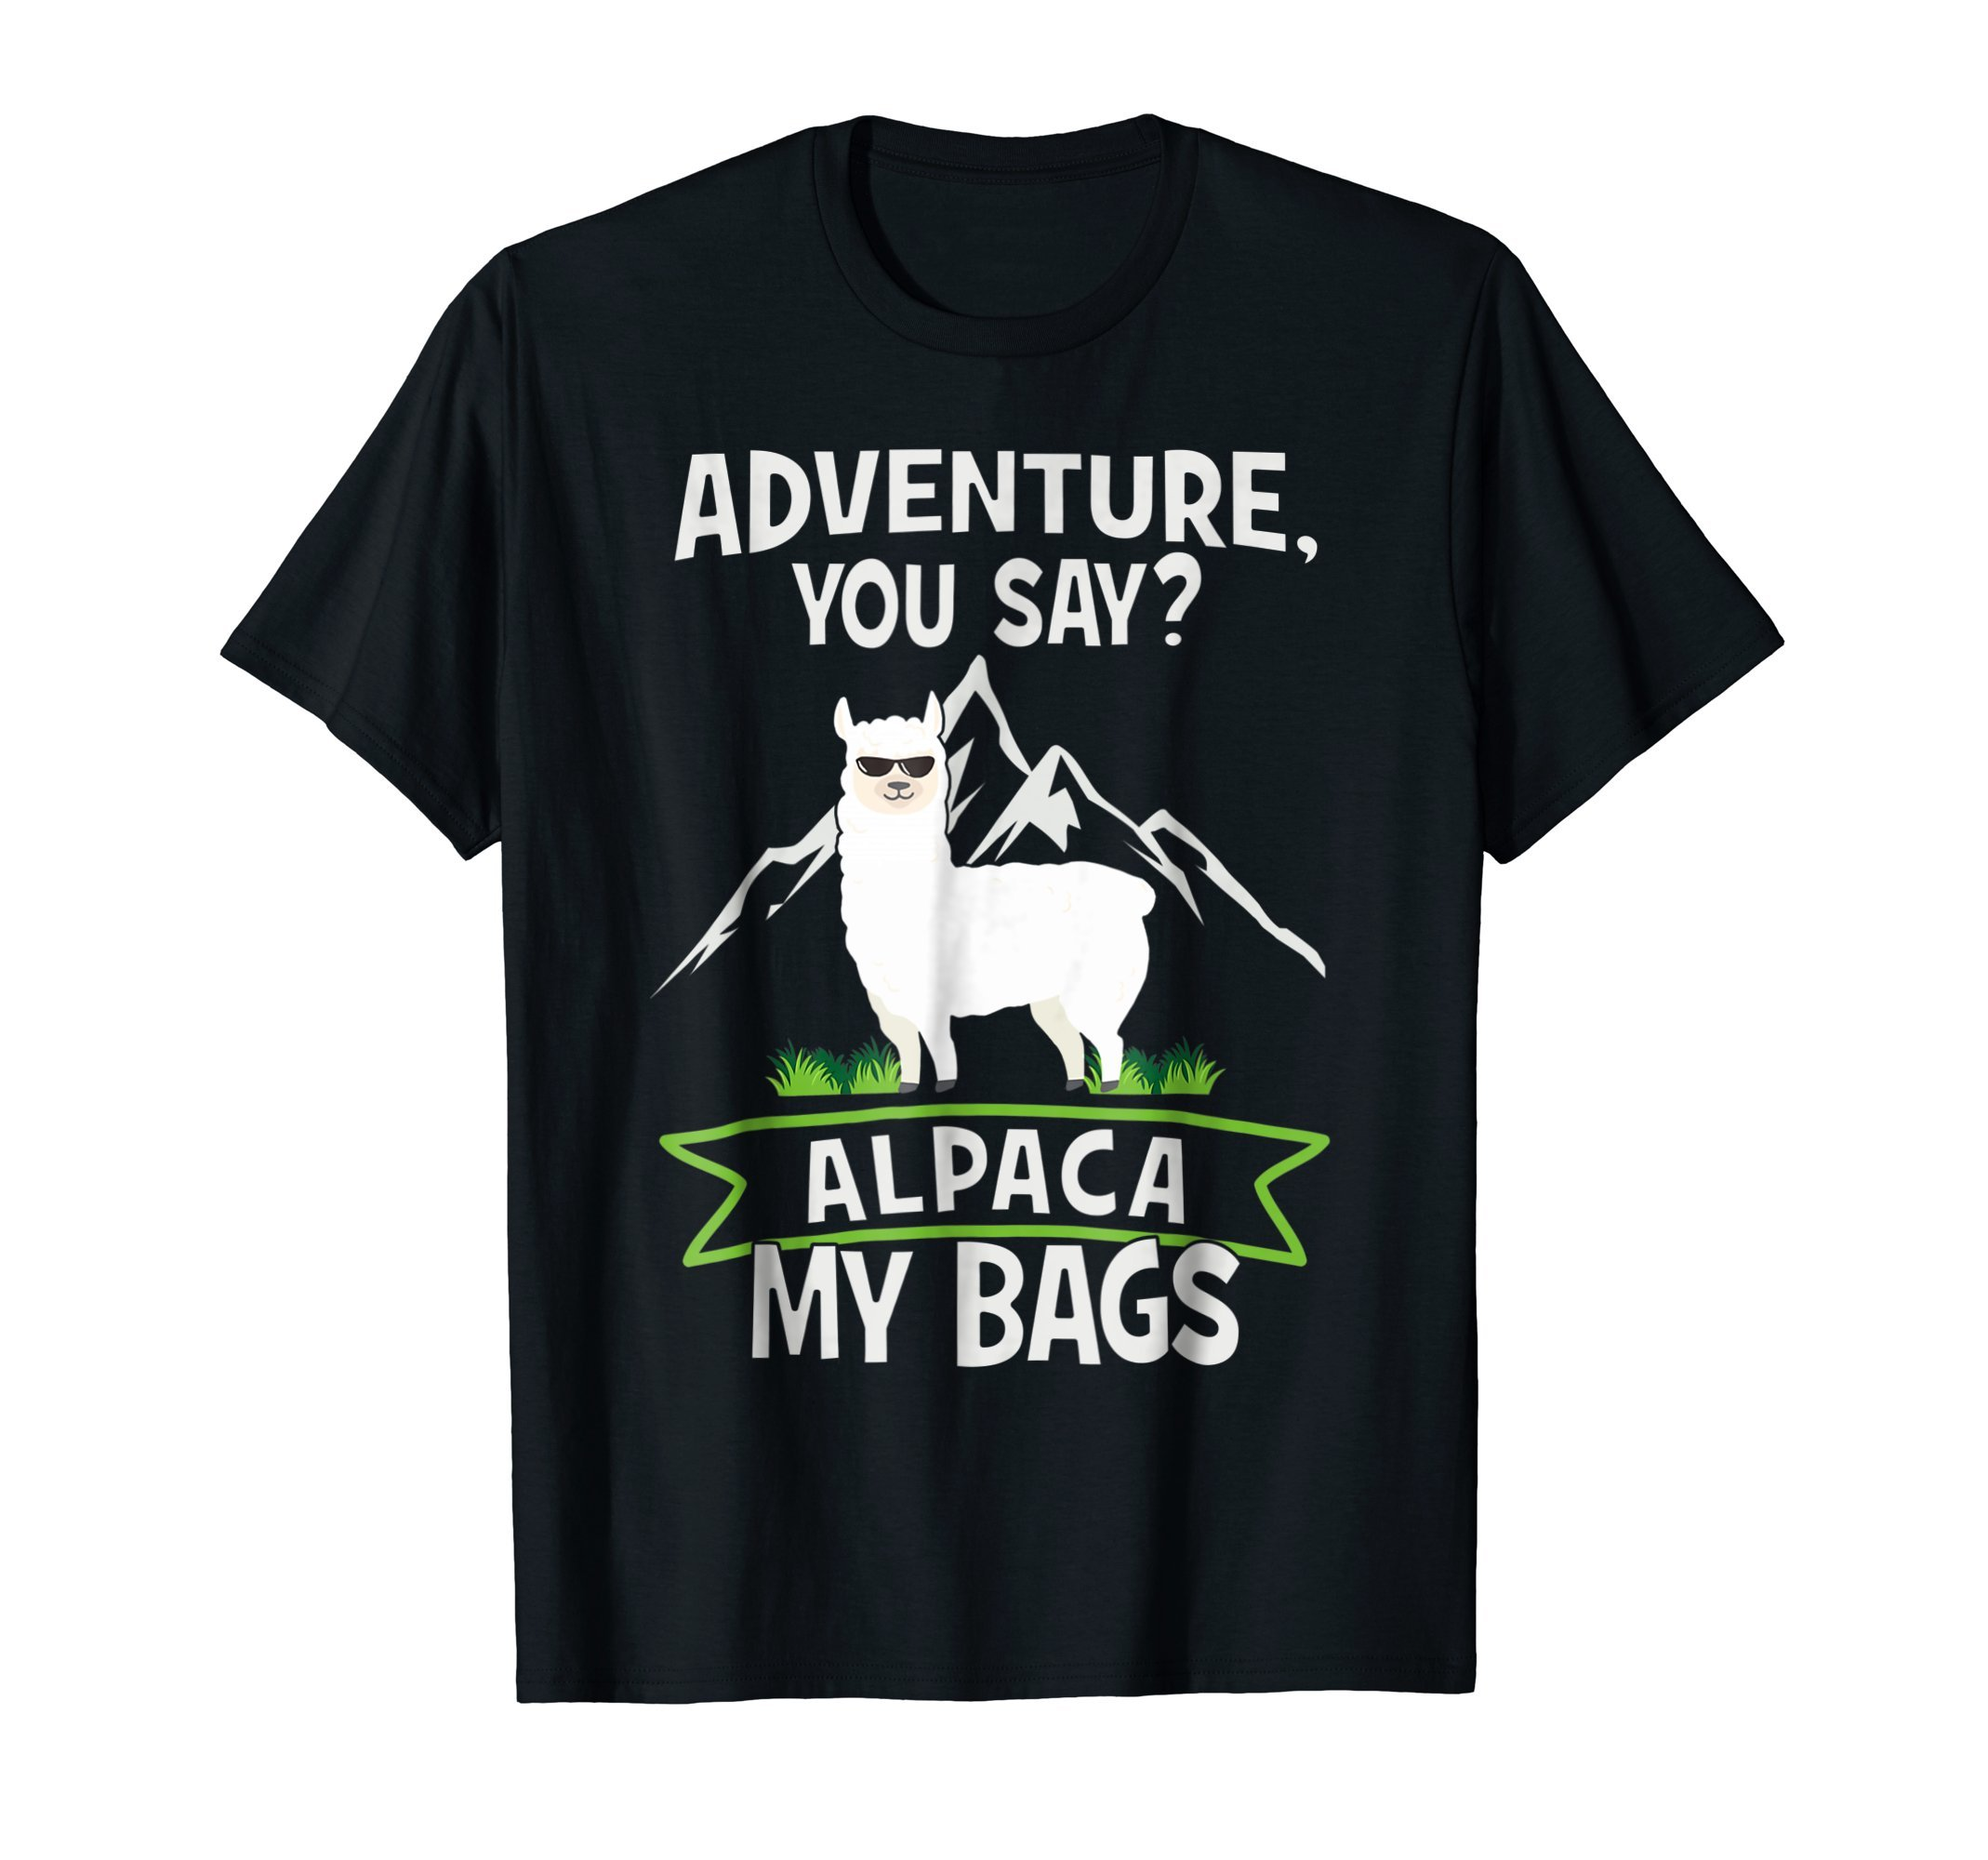 Adventure, You Say? Alpaca My Bags Funny Travelling Shirt